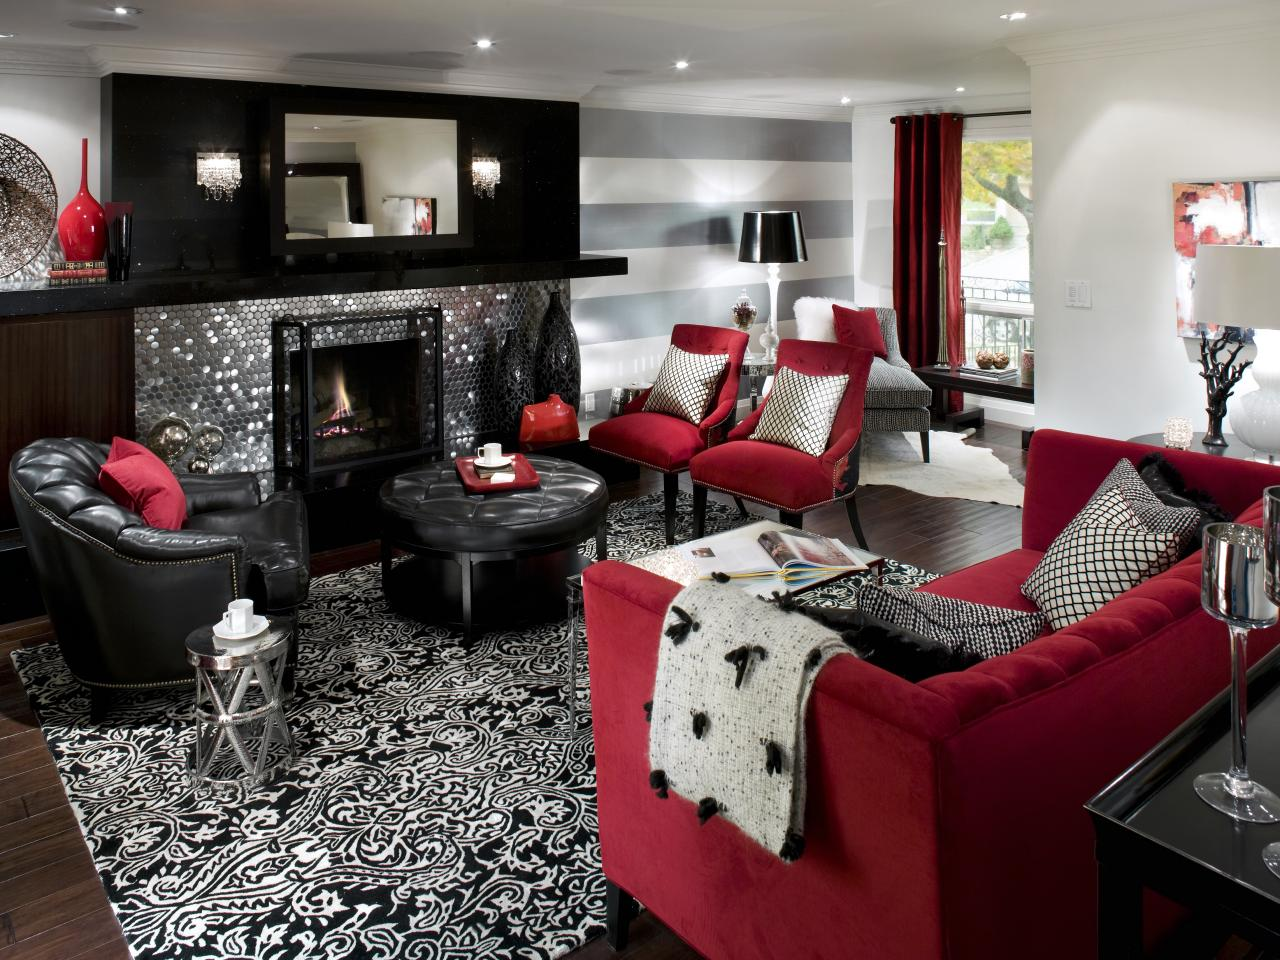 Charmant Retro Red, Black And White Family Room